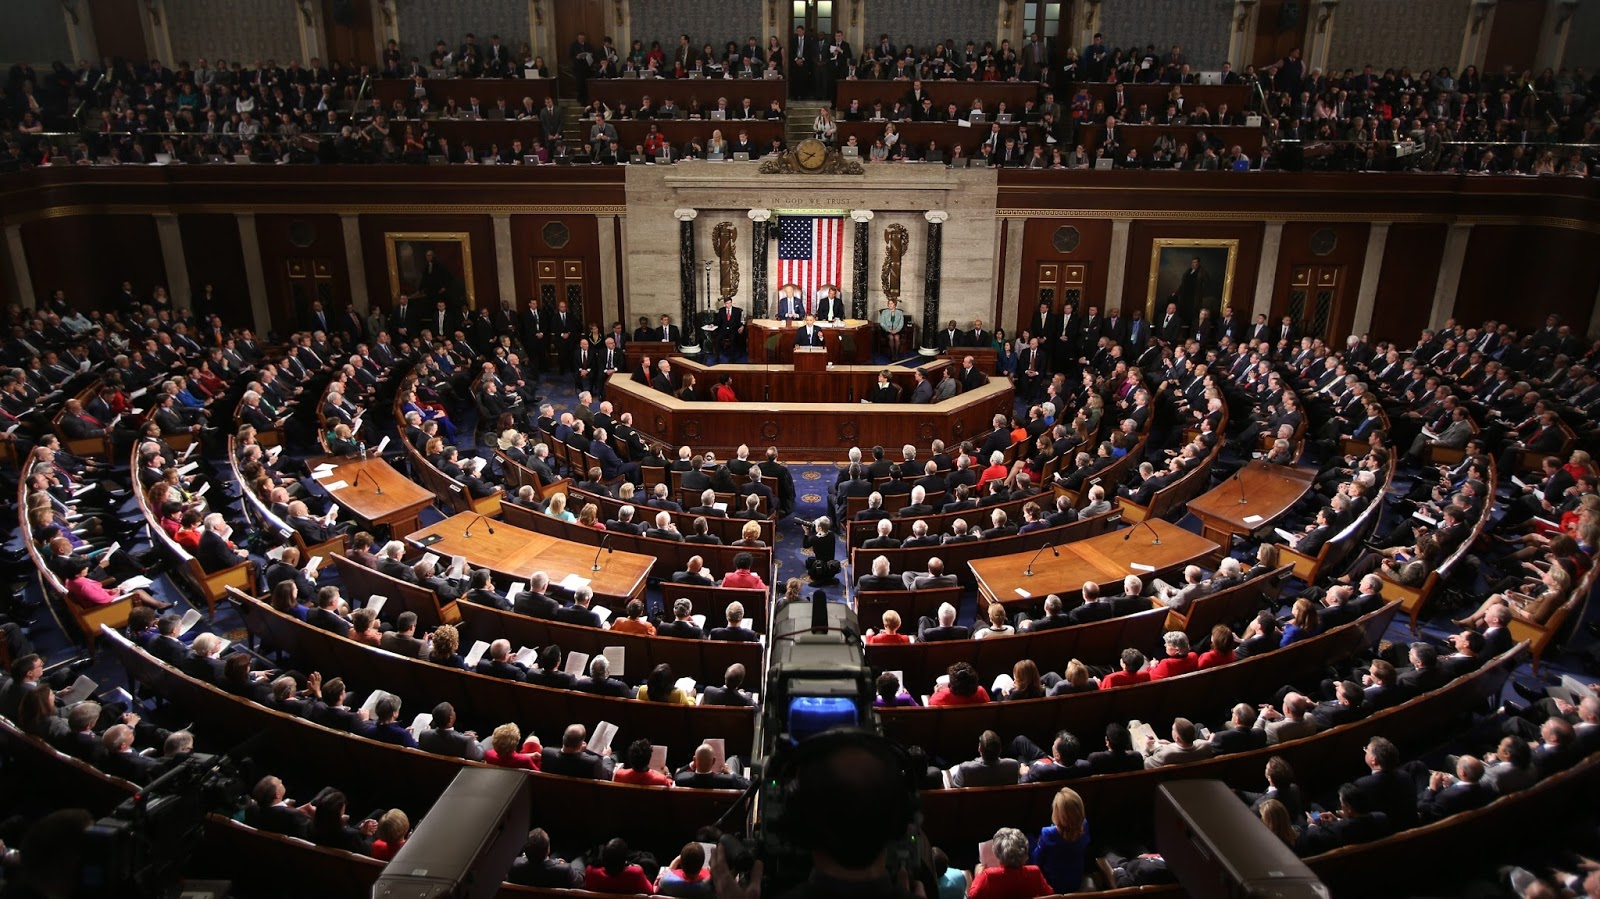 Who Is The Speaker Of The House Representatives? And What Is The Role Of The Speaker Of The House?